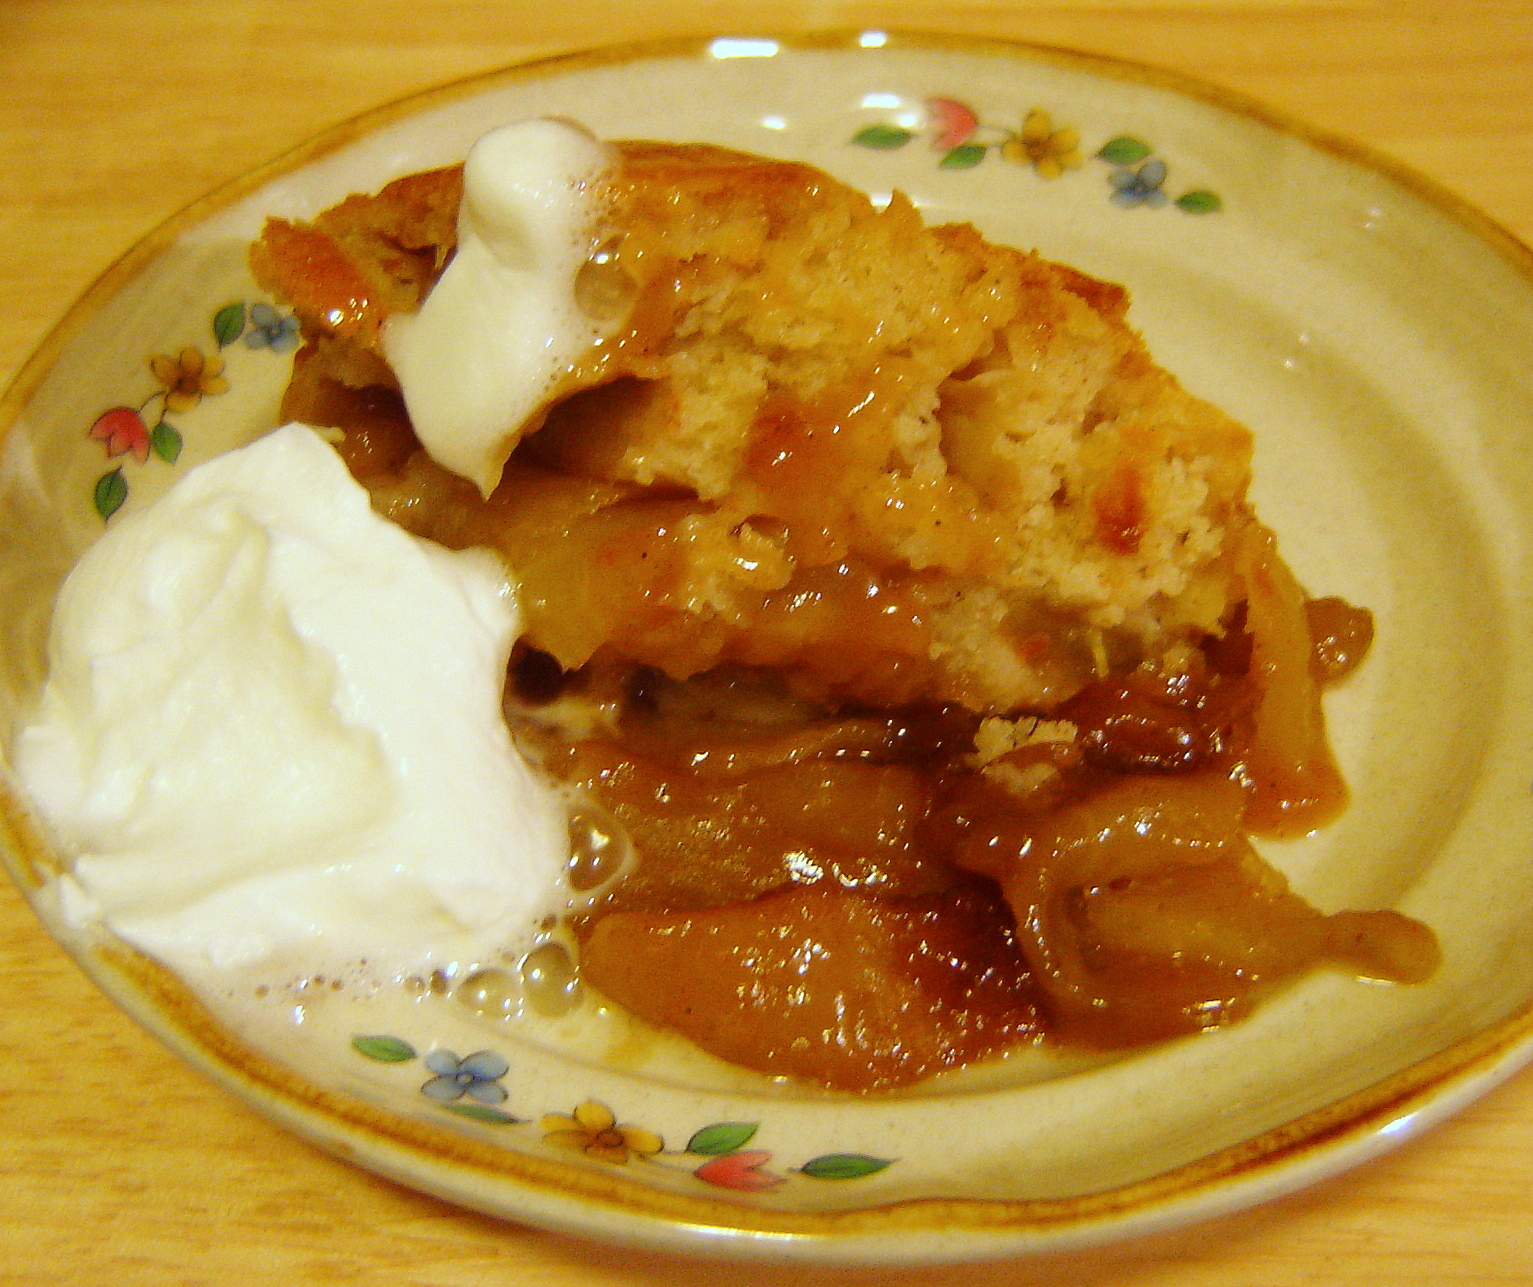 Skillet Caramel Apple Cobbler | At Home in Alaska